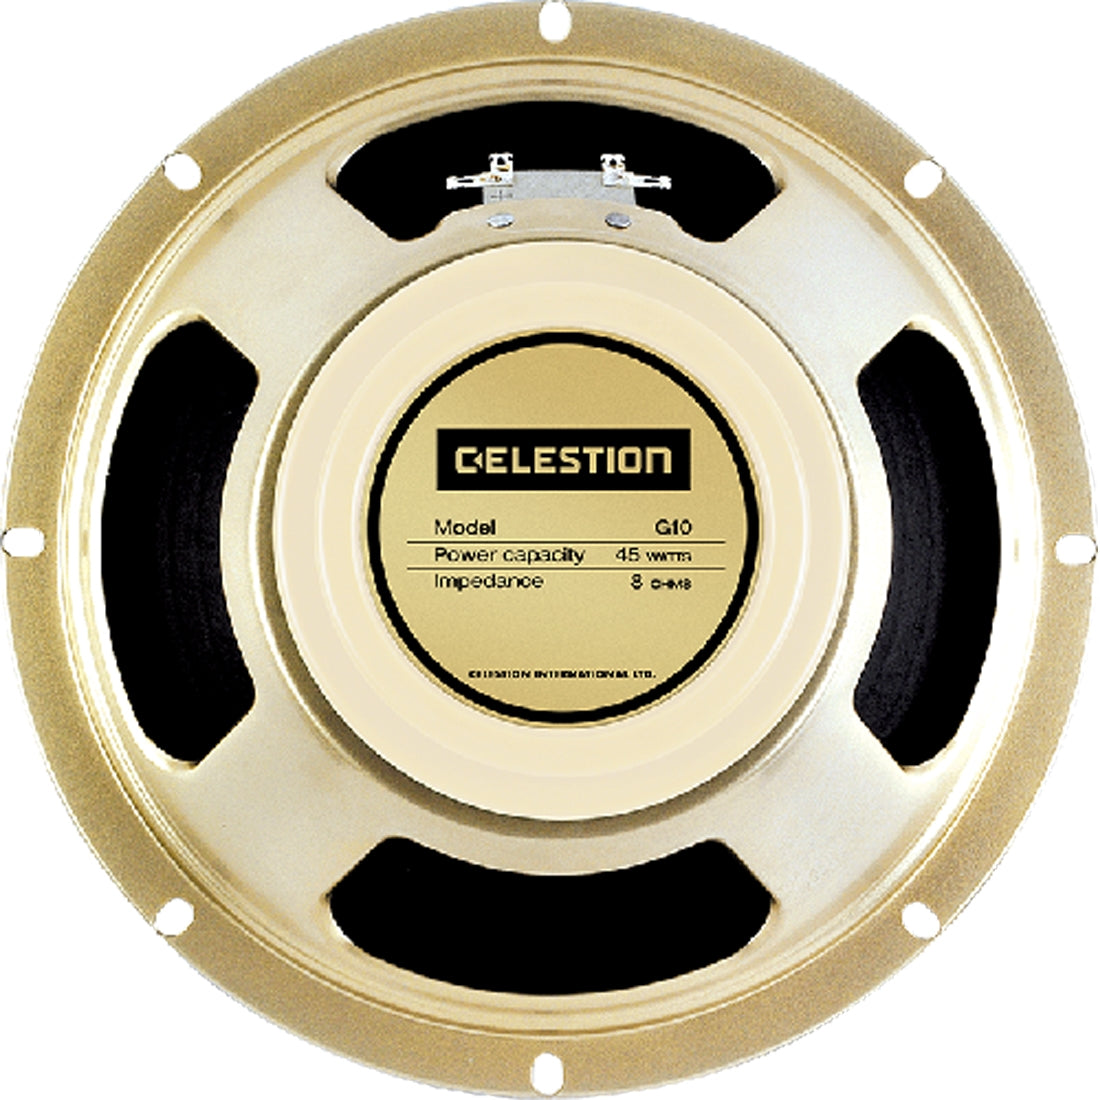 Celestion T6380 G10 CREAMBACK Guitar Speaker 10 Inch 45w 8ohm